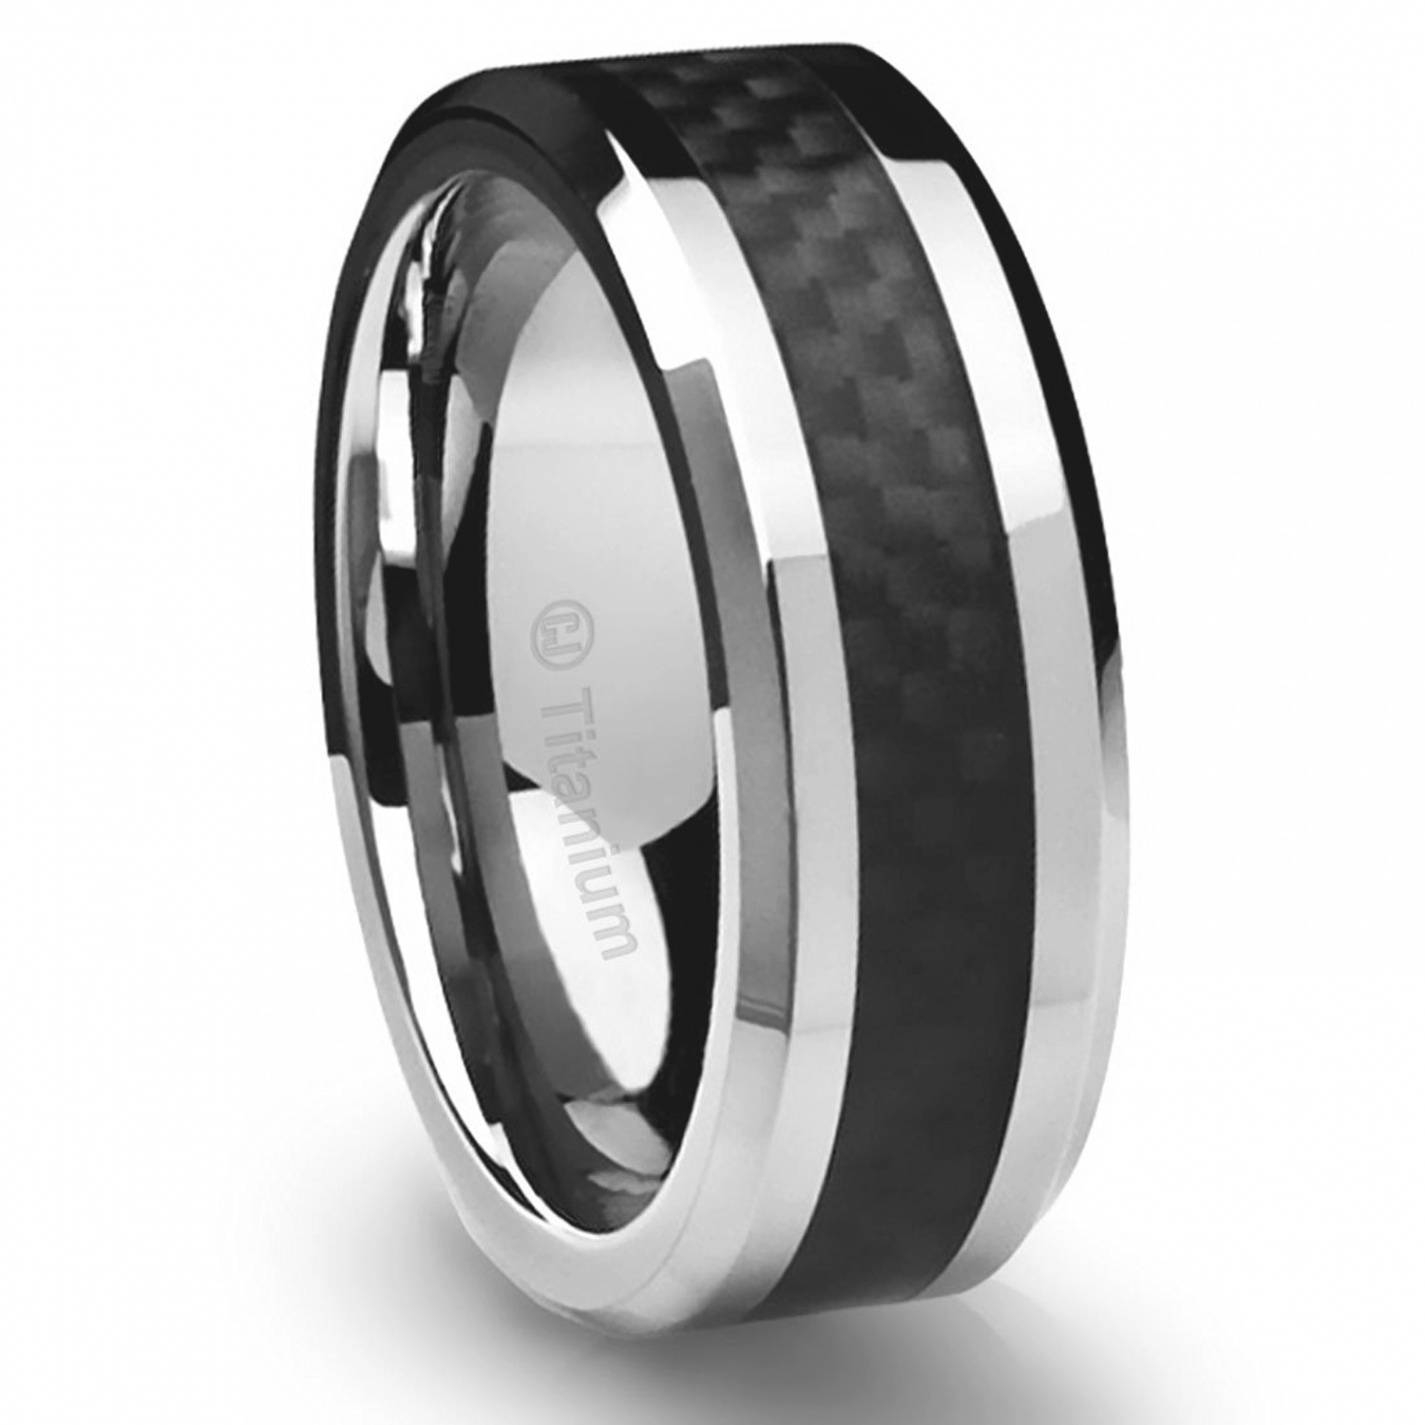 Exquisite Ideas Wedding Rings For Mechanics Tungsten Carbide In Mechanic Wedding Bands (View 10 of 15)